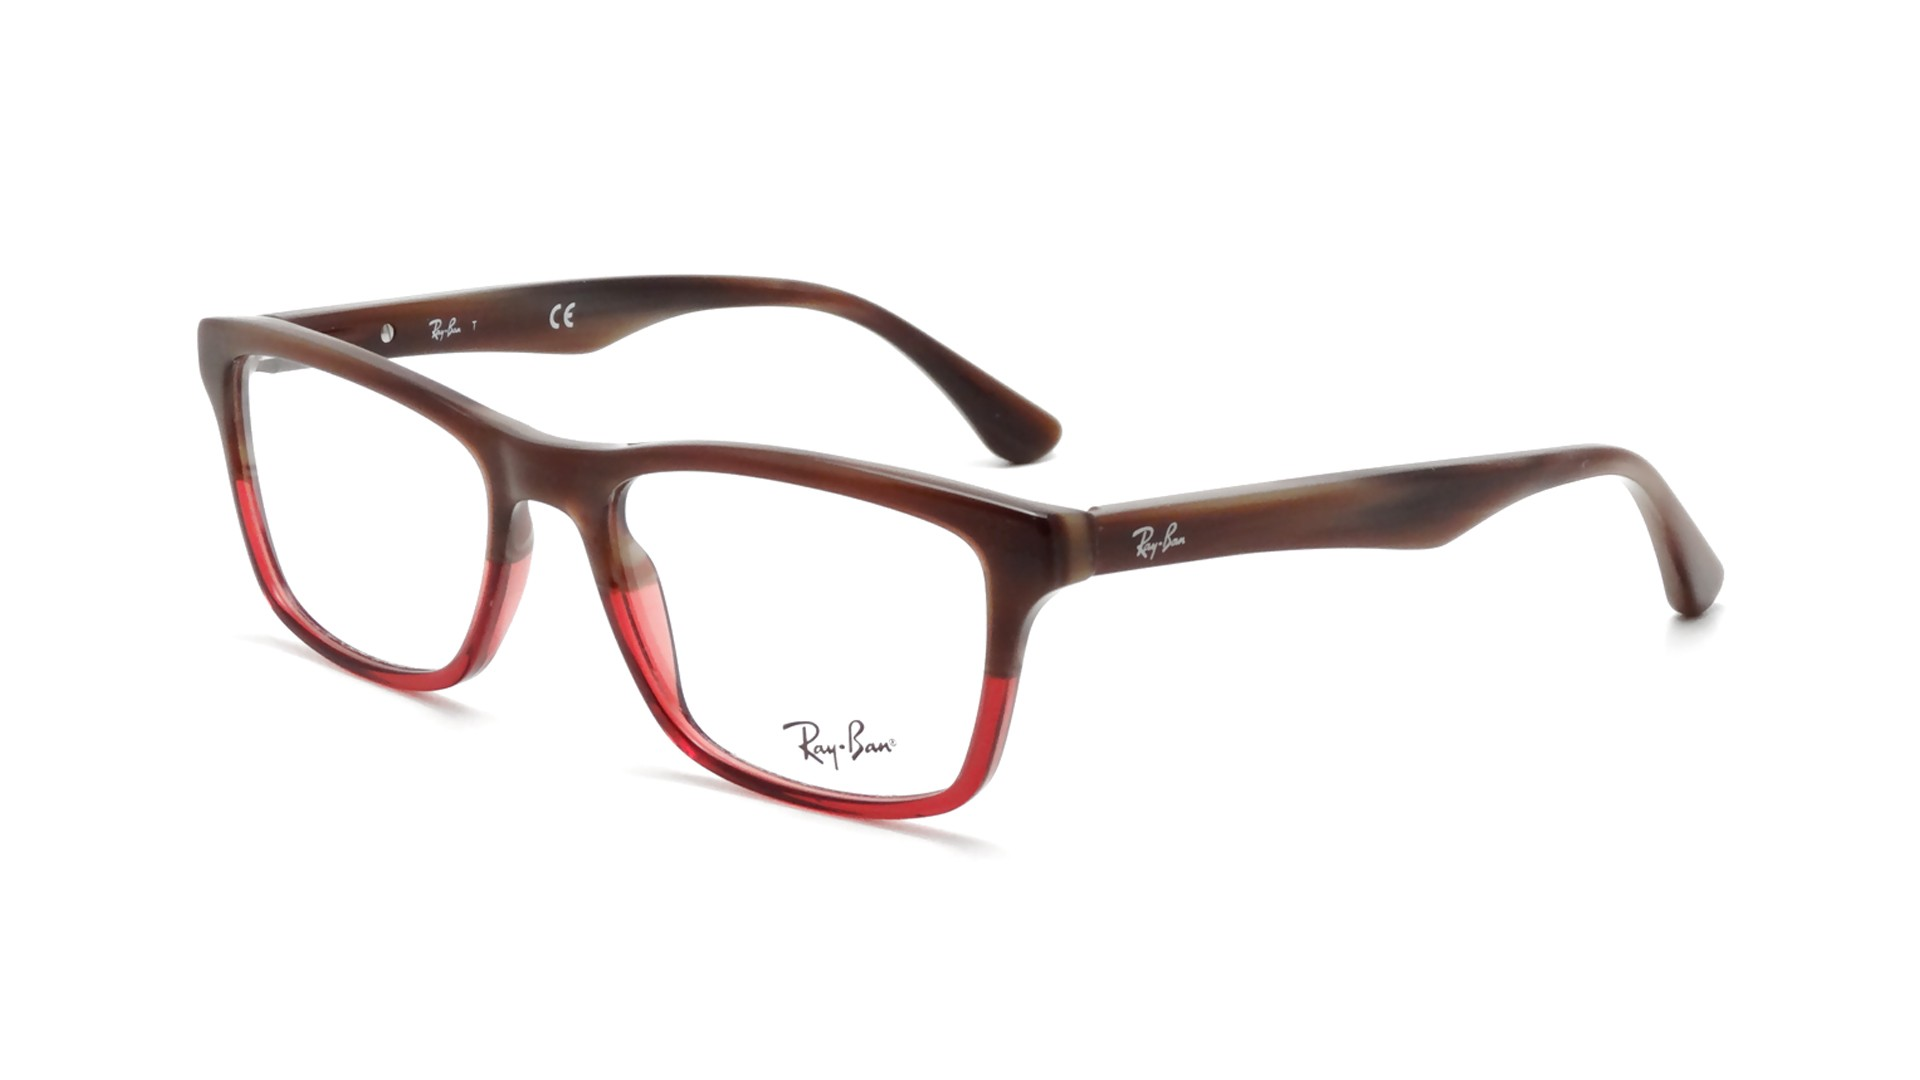 ab34aa3a53 sweden ray bans black faded glasses 8a58d f9d7a  coupon eyeglasses ray ban  rx5279 rb5279 5541 53 18 brown medium d9a68 d94d8